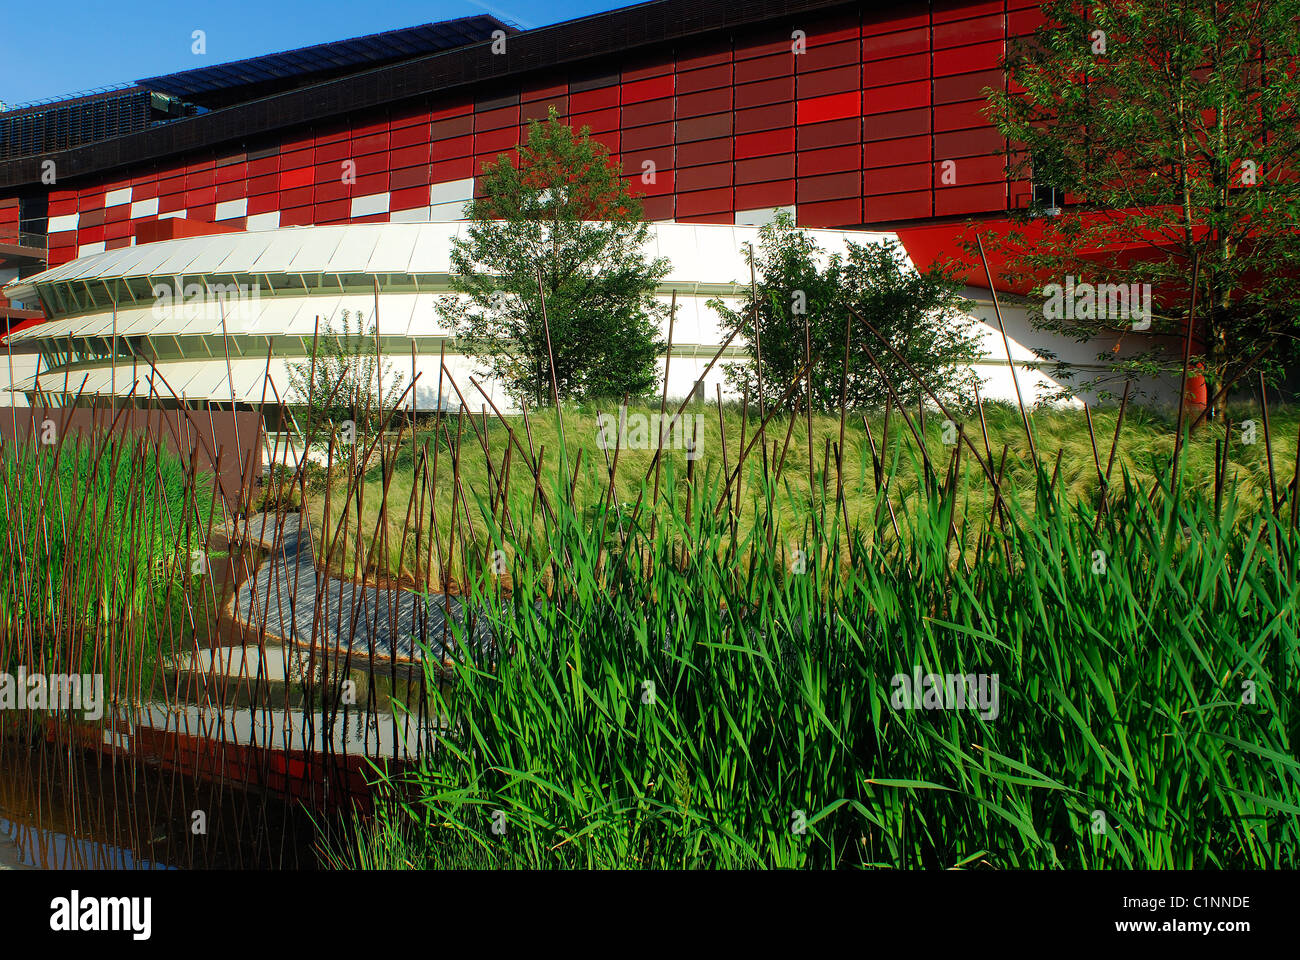 France, Paris, Quai Branly Museum (anthropological museum) by Jean Nouvel and the Eiffel Tower at the background - Stock Image